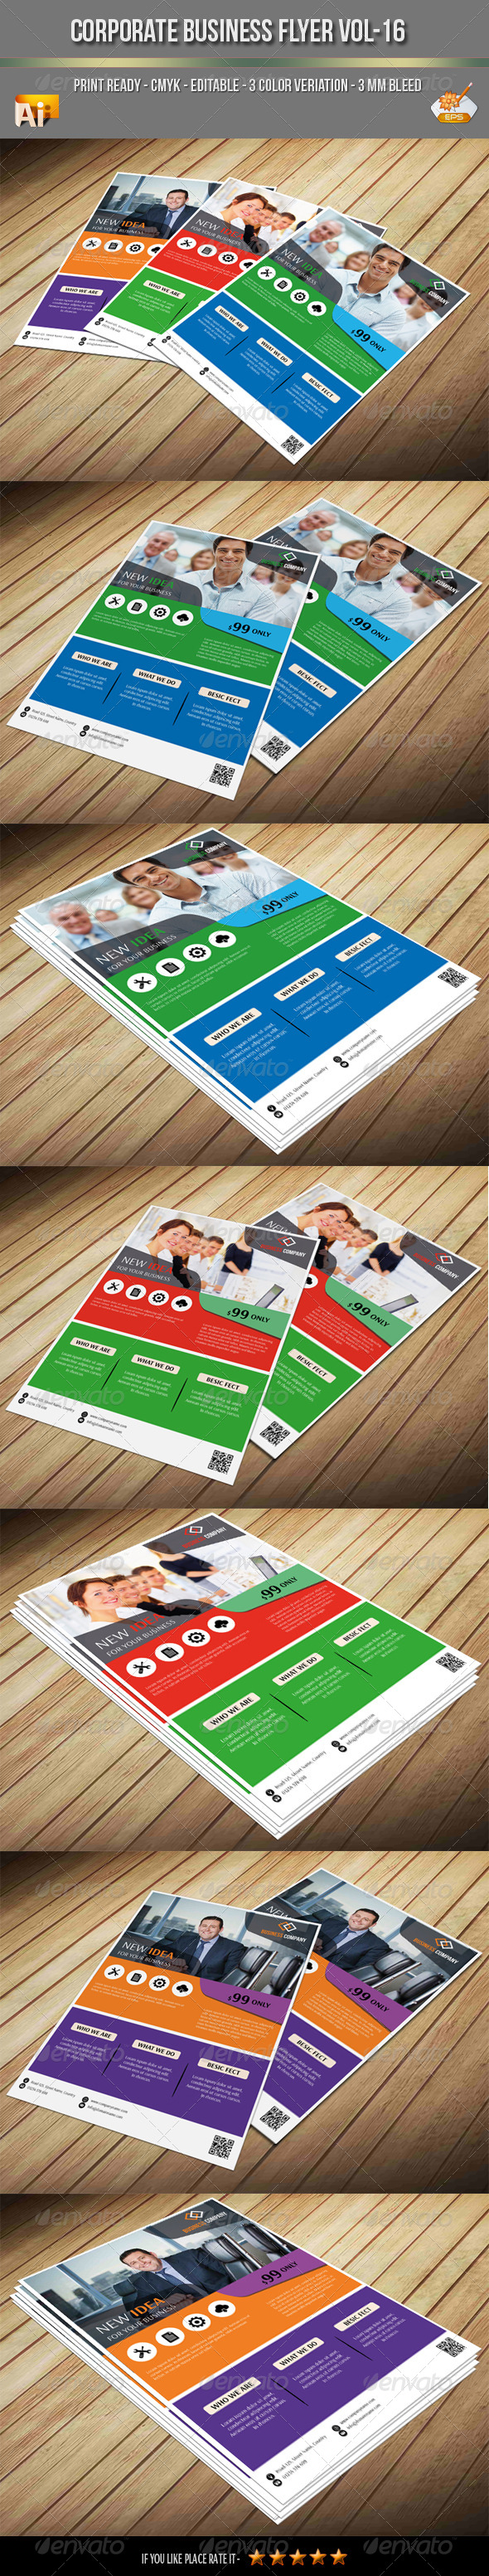 GraphicRiver Corporate Business Flyer Vol-16 7840783